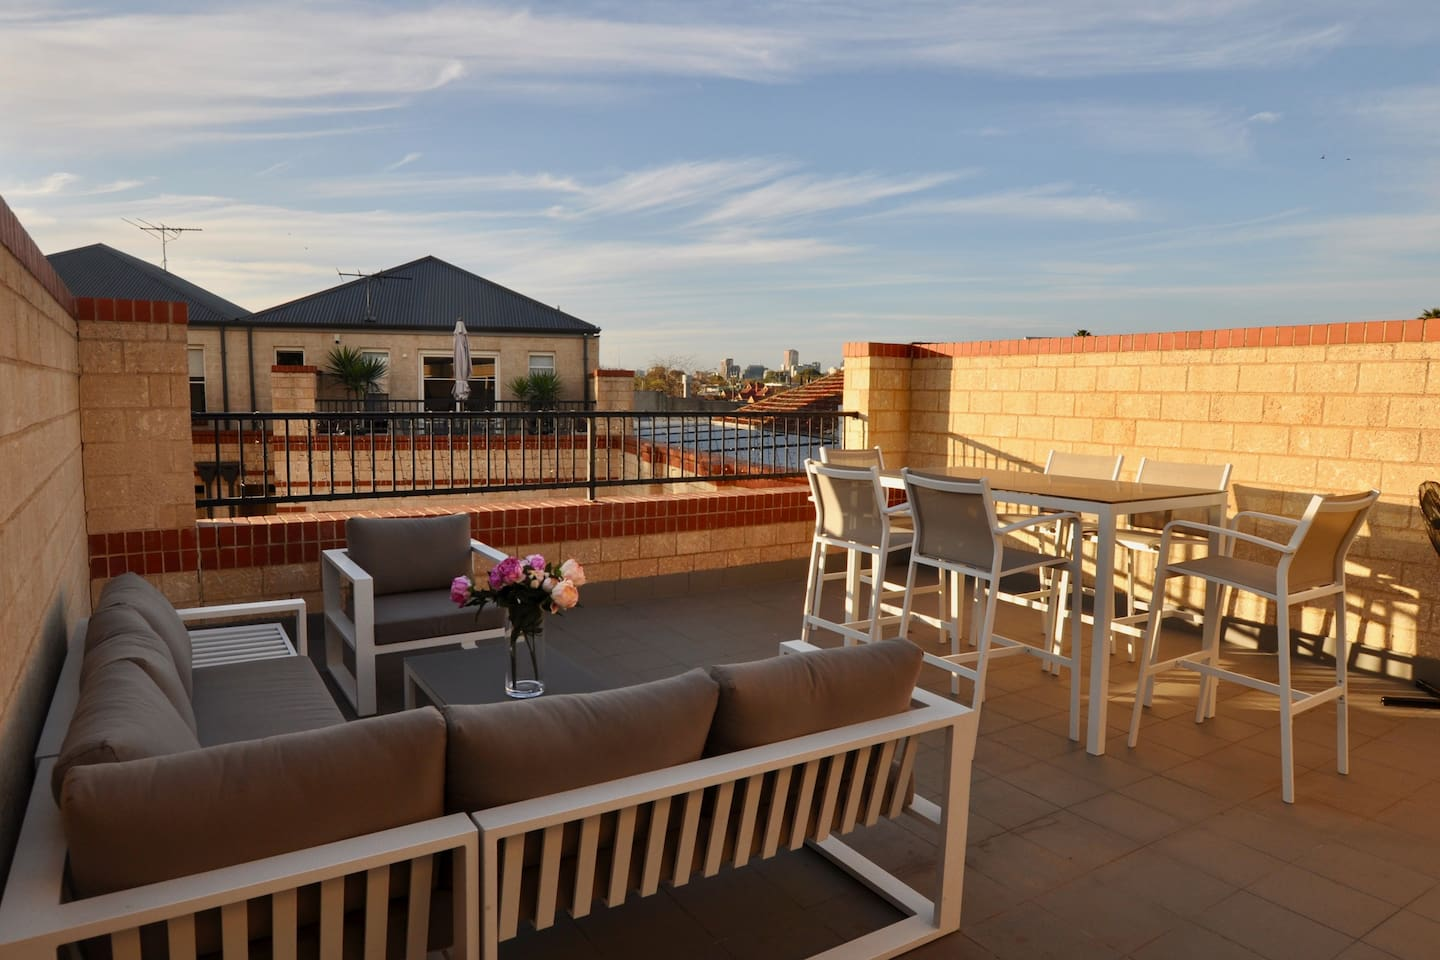 Your terrace has a seating and bar area so that you can relax and enjoy a beverage or cook on the electric BBQ. The city view is good by day and even better at night!